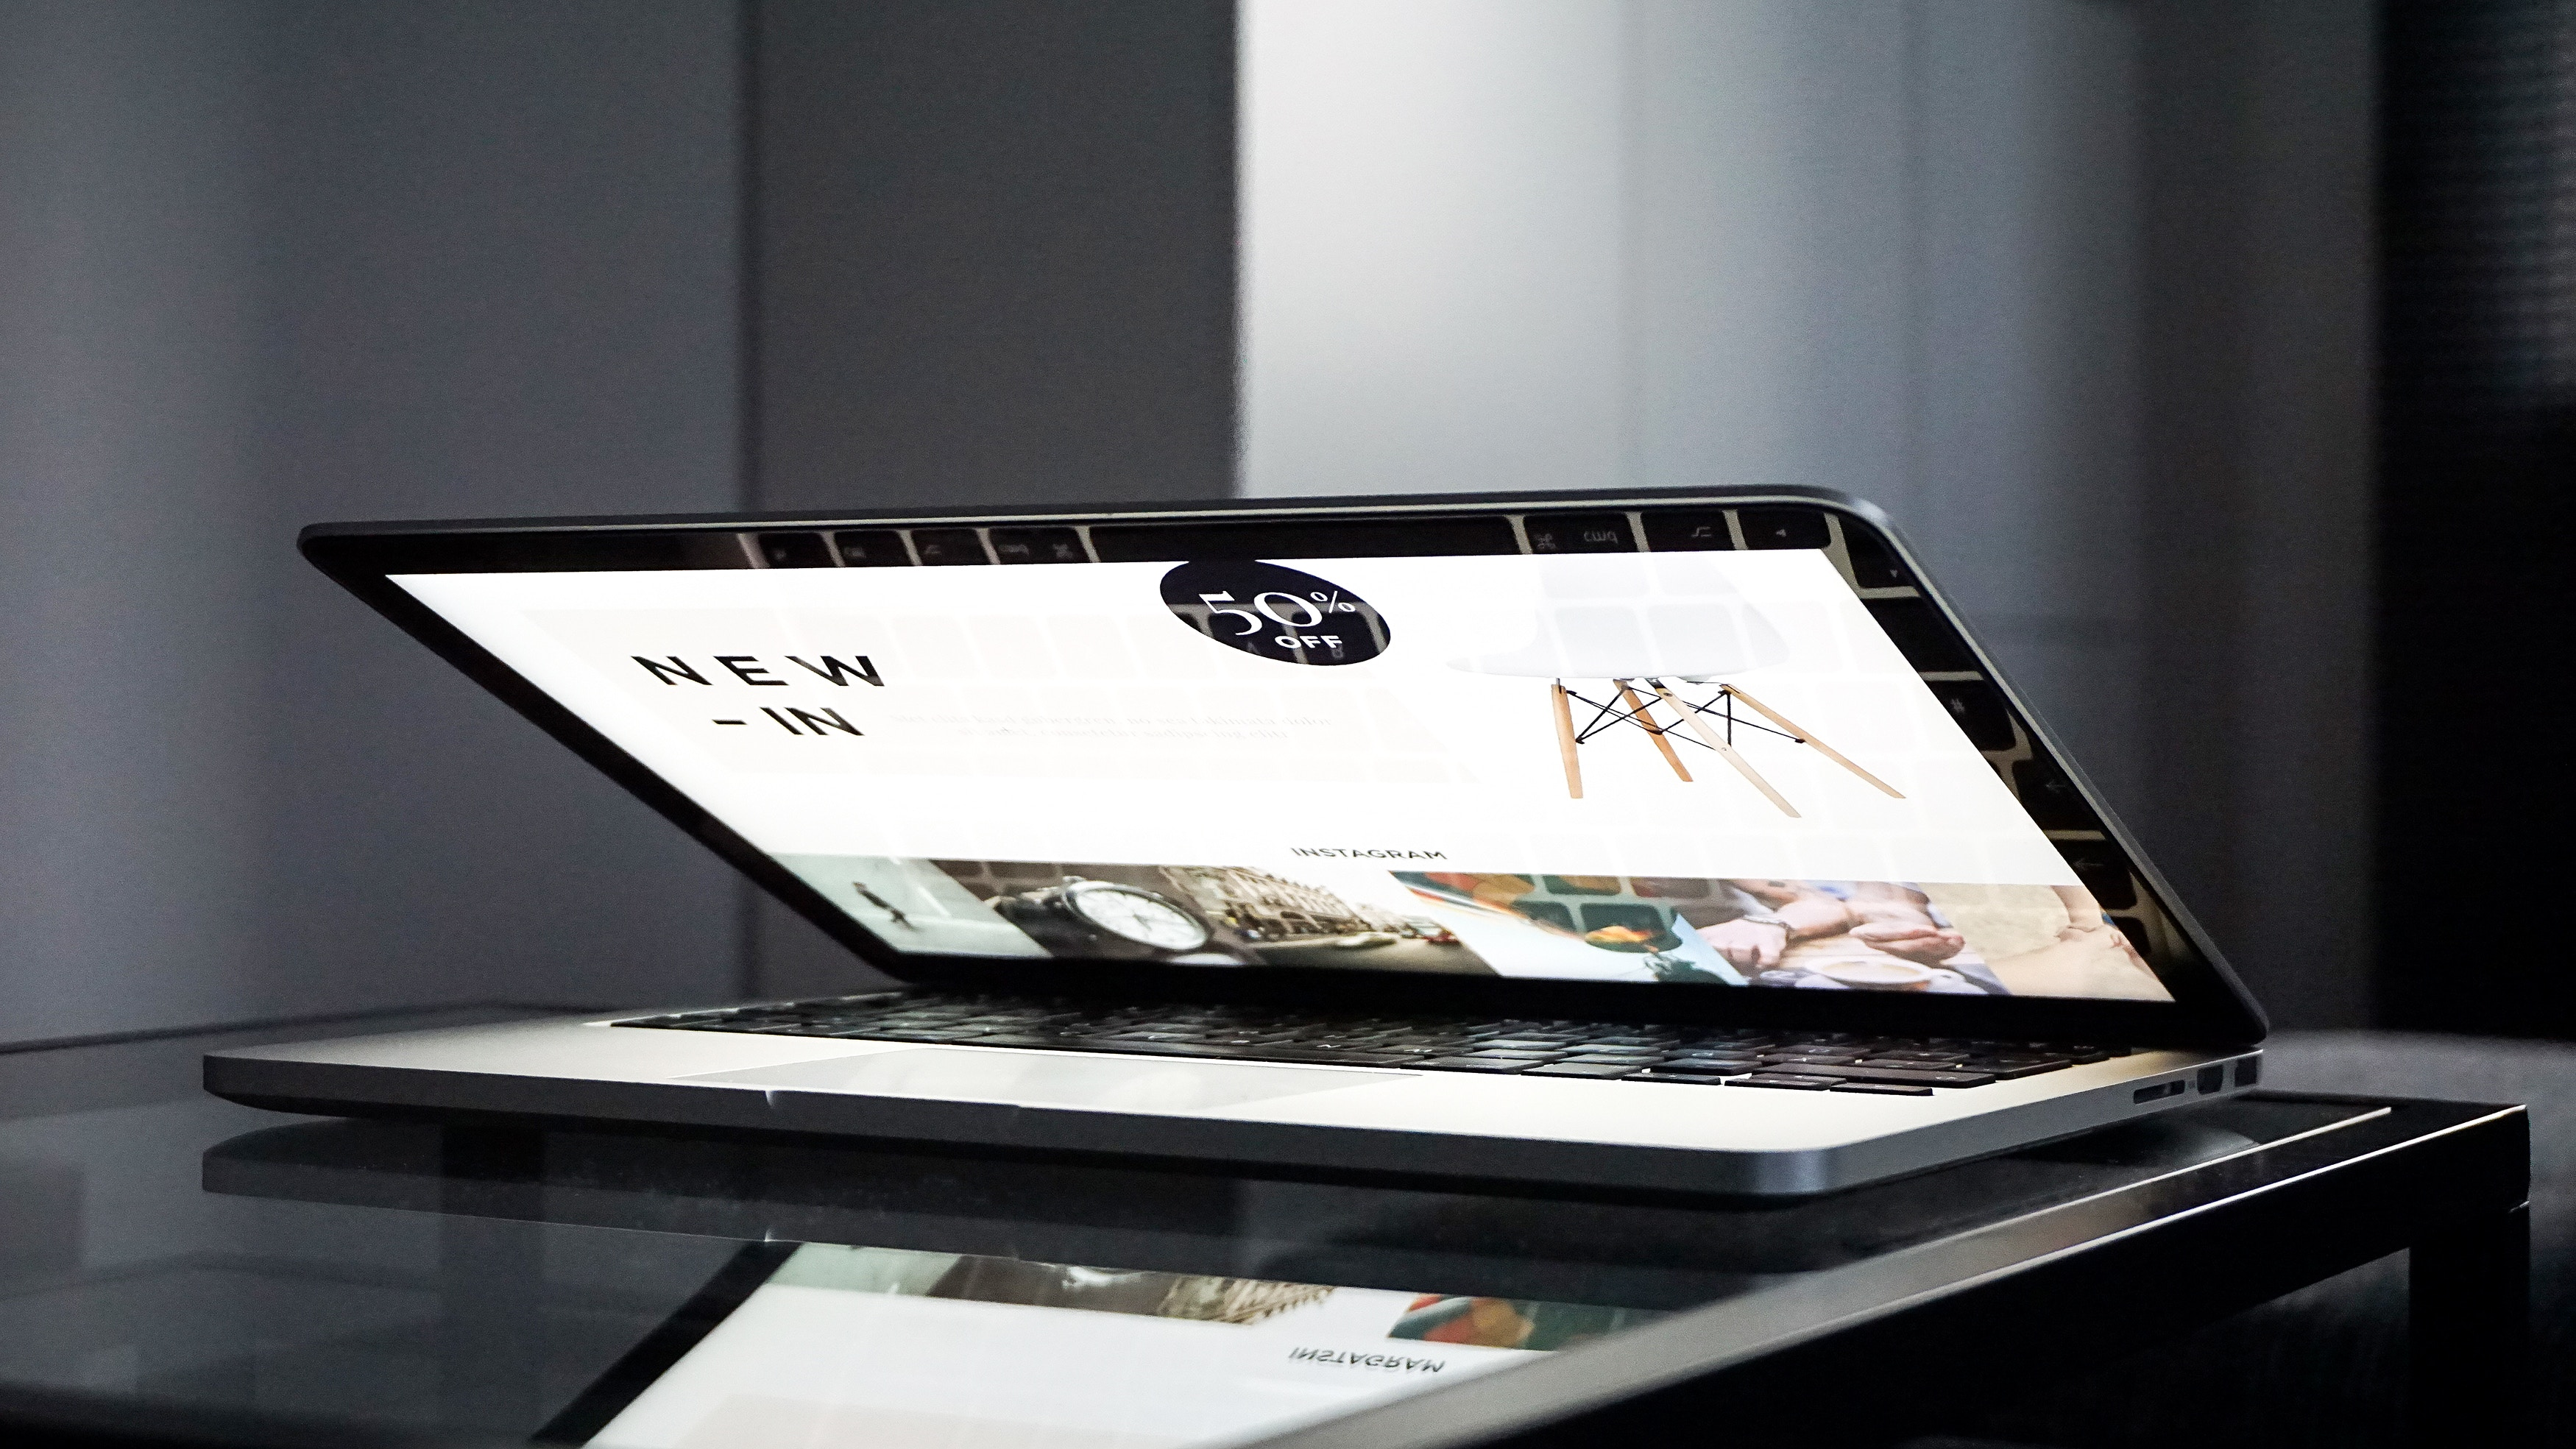 10 Tips To Design The Most Creative Website